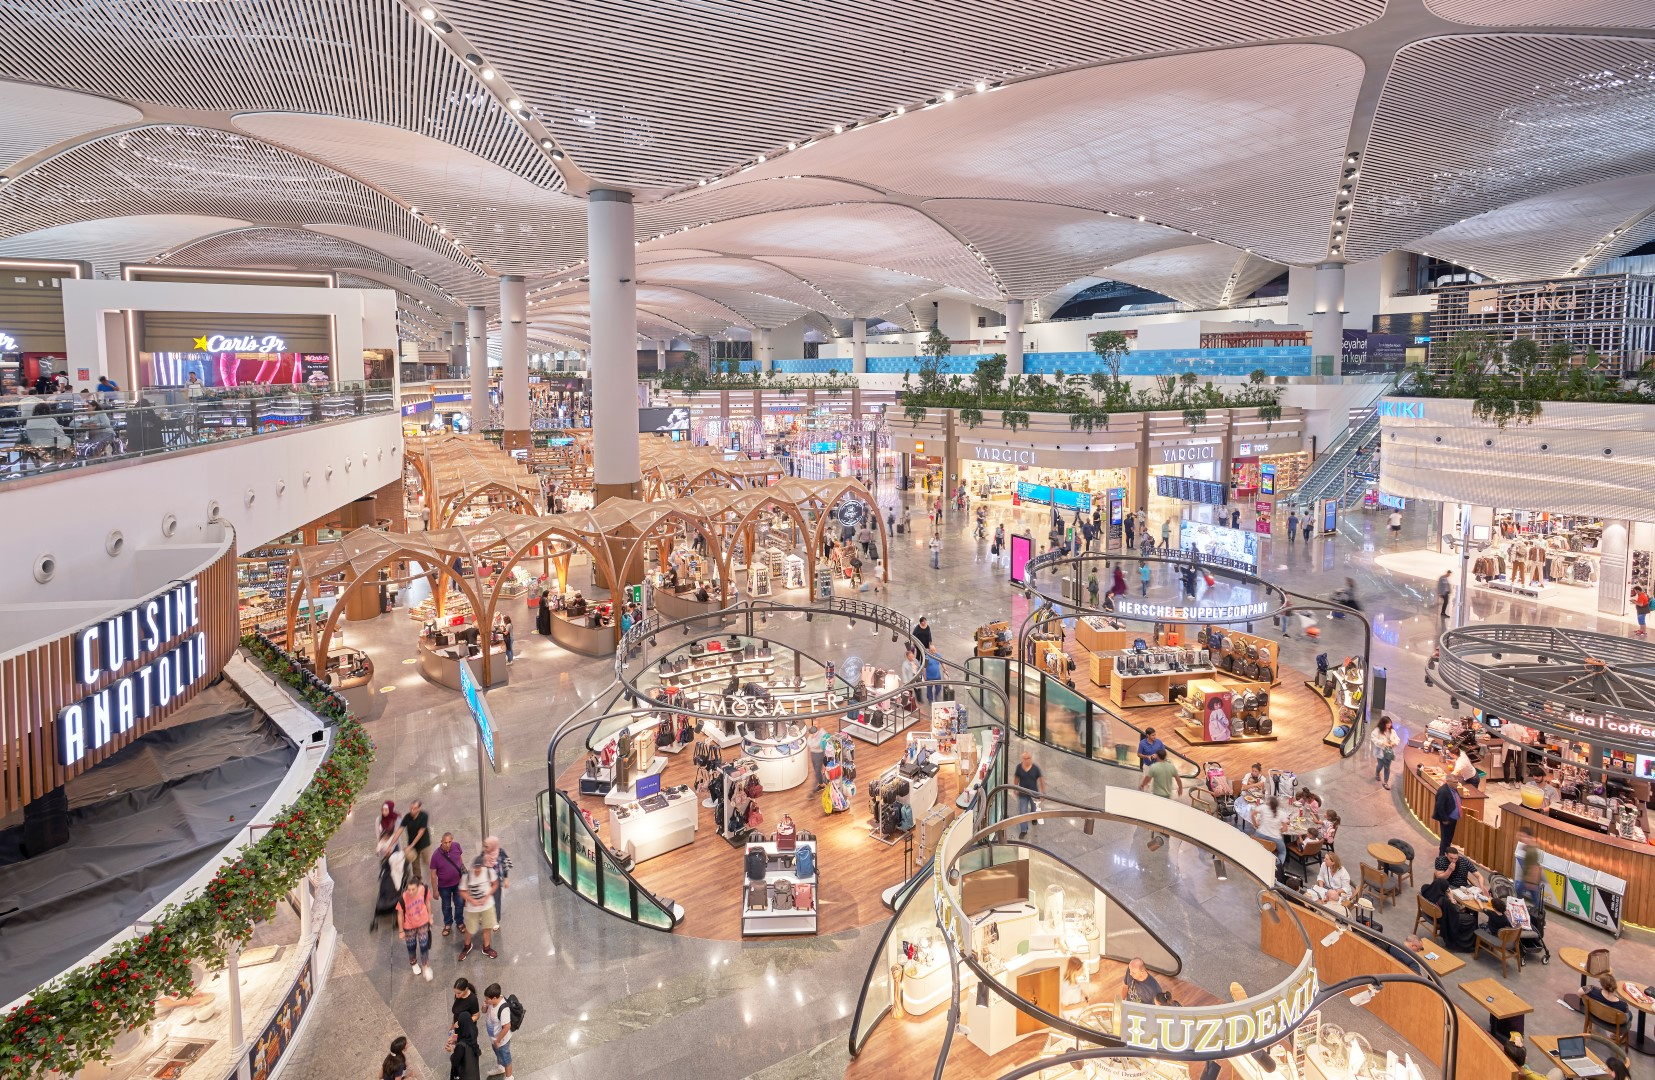 İSTANBUL AIRPORT BRINGS ART TO THE WORLD WITH IGART